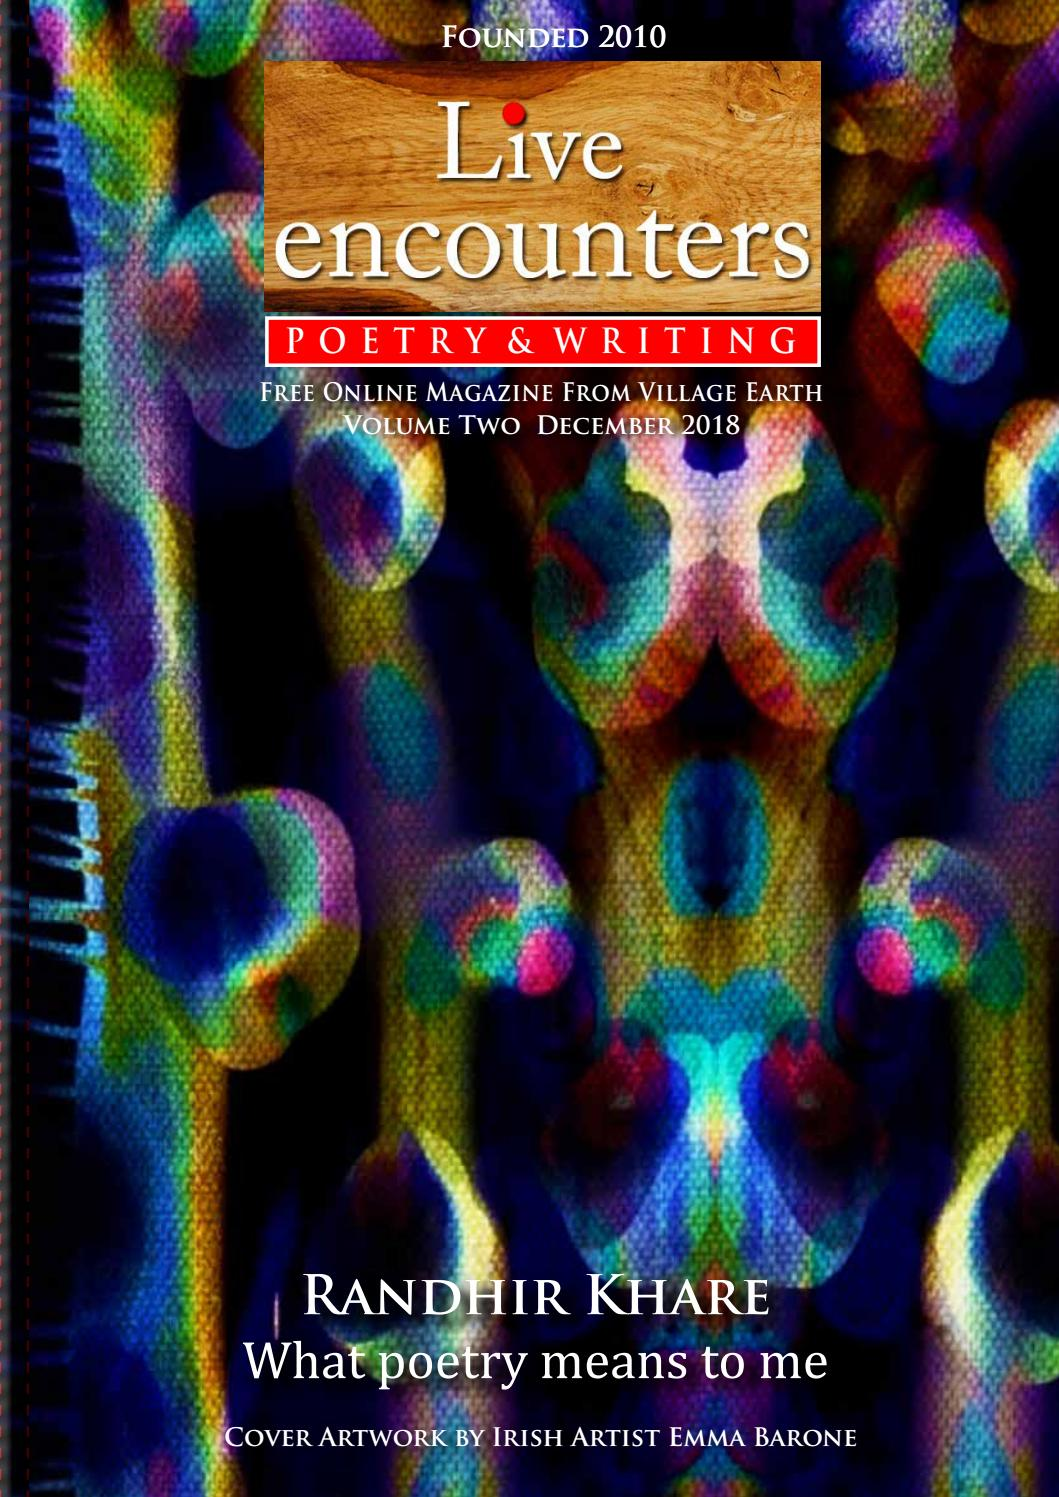 18fccbad8e Live Encounters Poetry   Writing Volume Two December 2018 by Live  Encounters - issuu